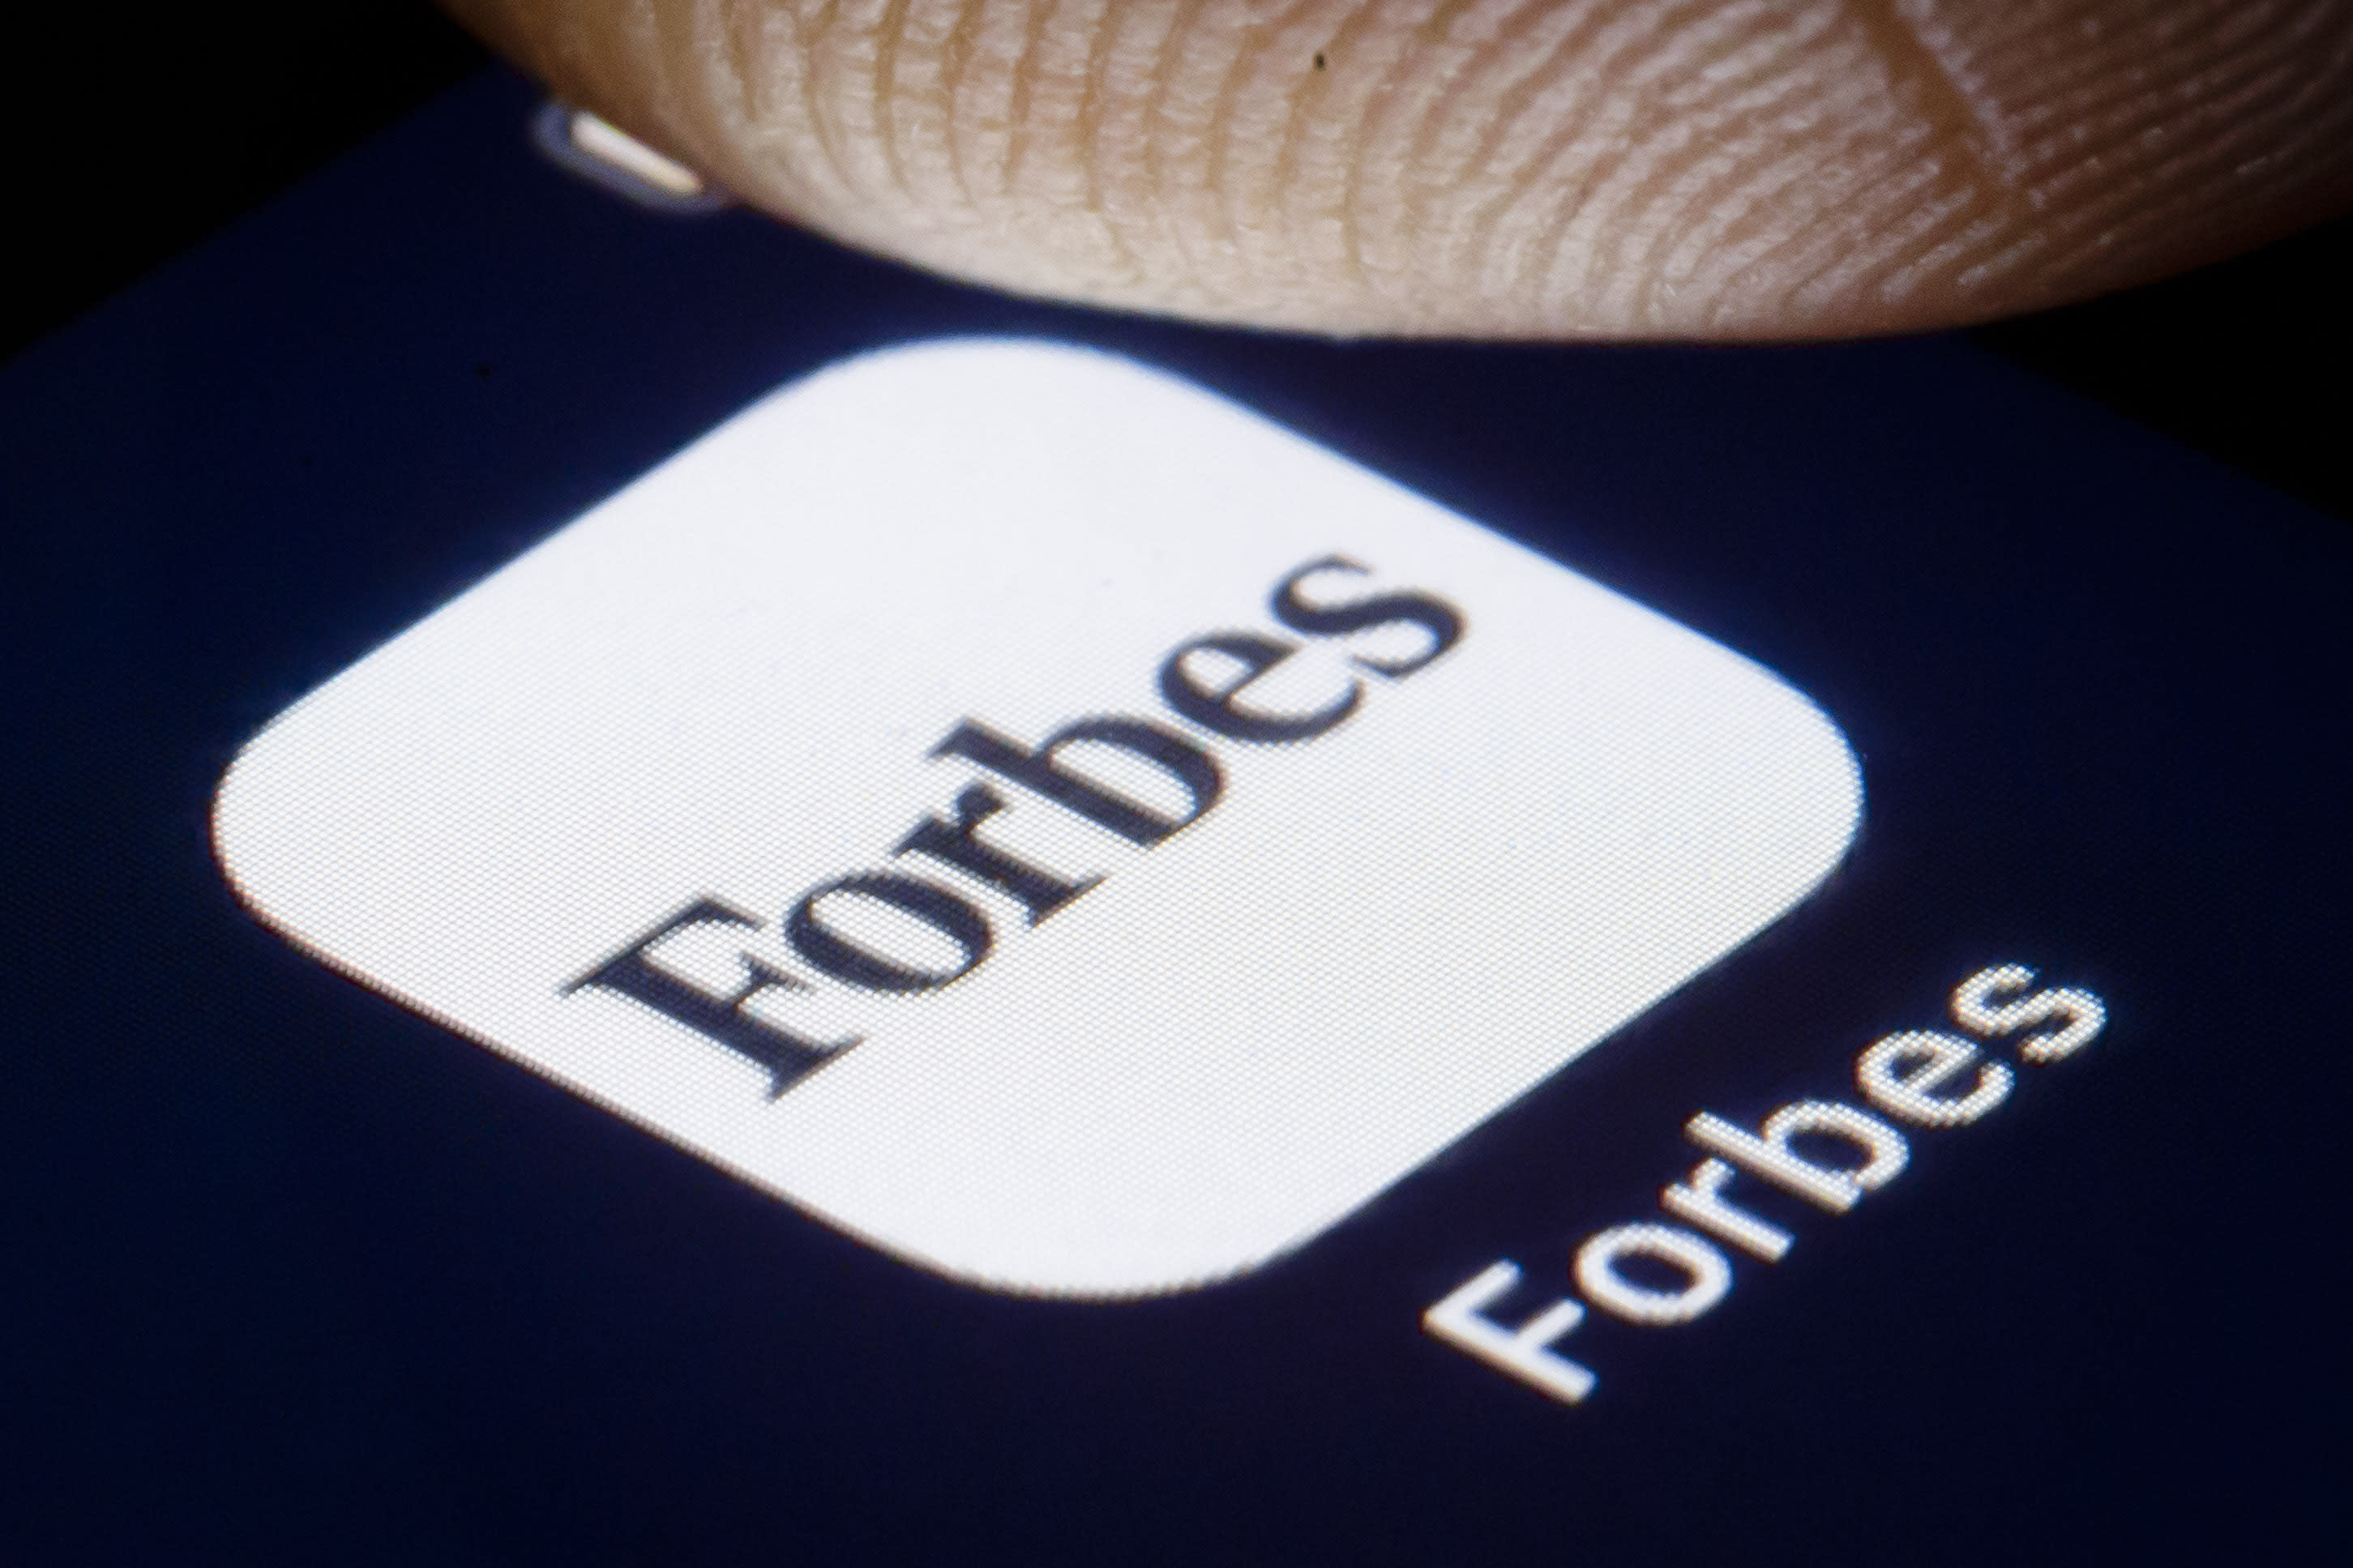 Forbes 'Innovative Leaders' list sends a 'sinister message': Branding expert